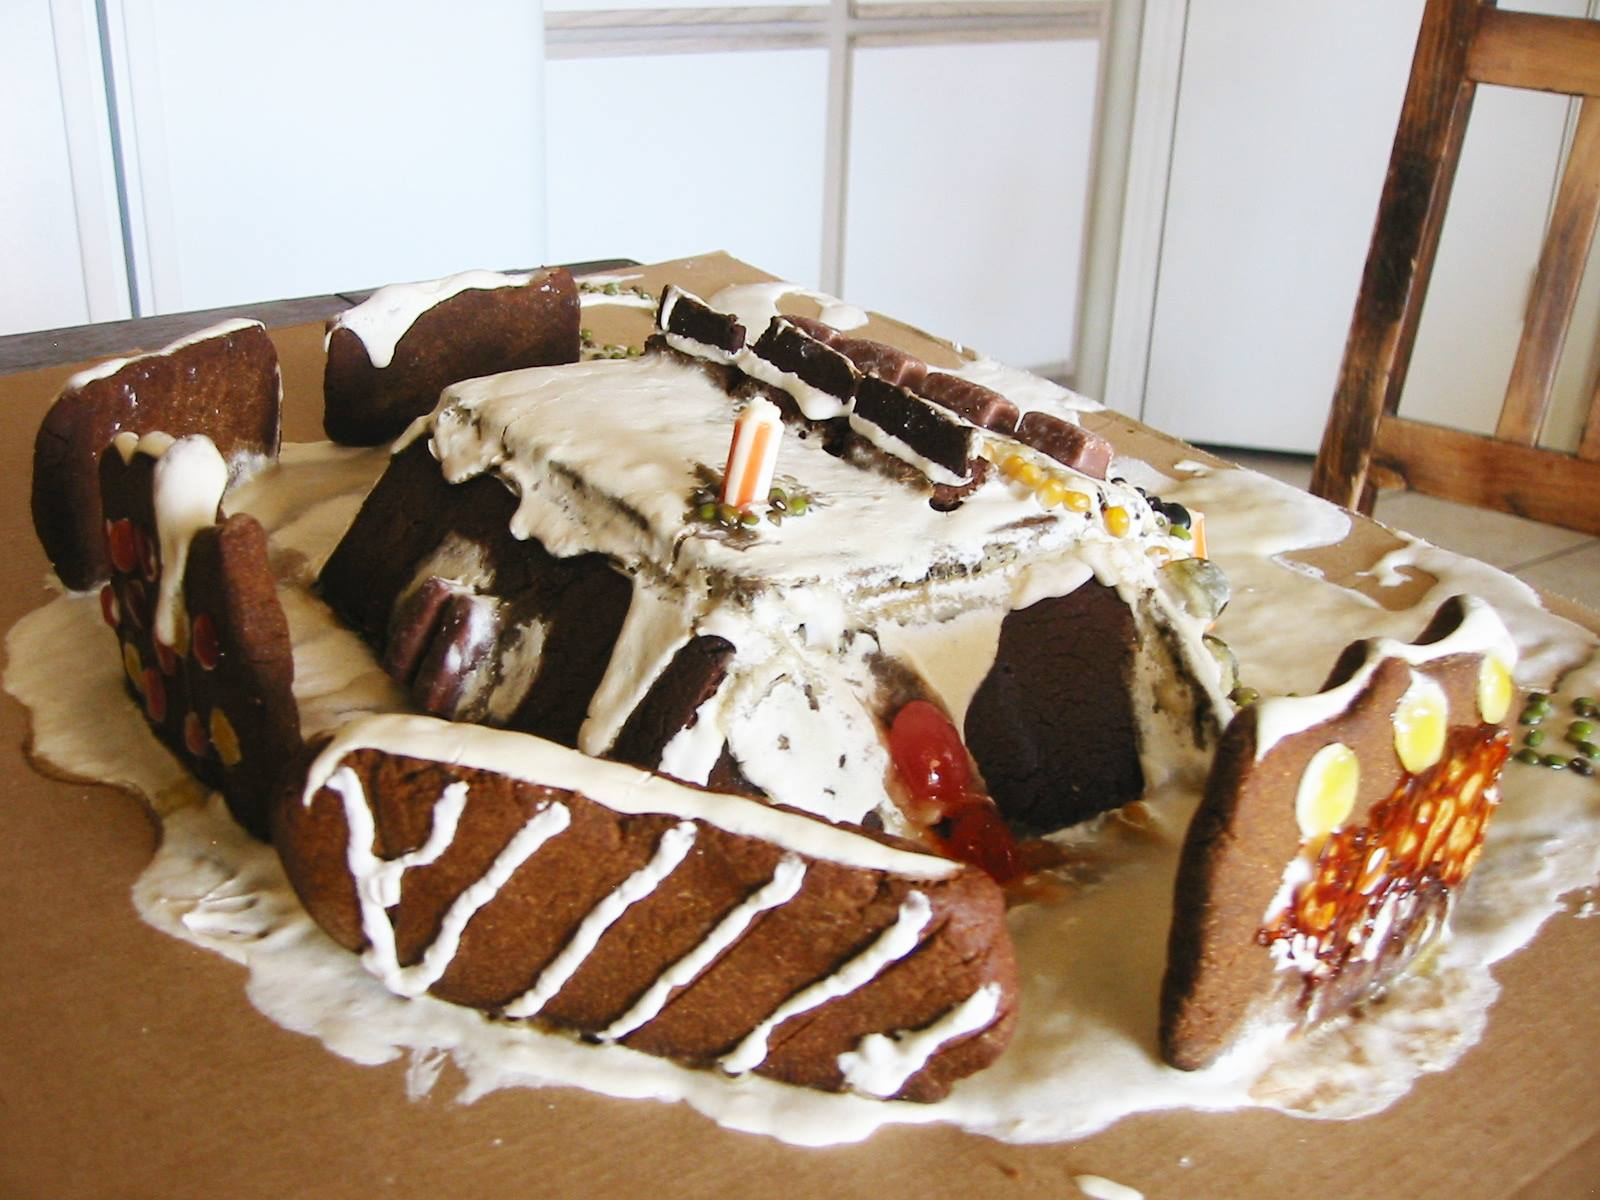 Tom Schultz Gingerbread Earthship 2016 3.jpg